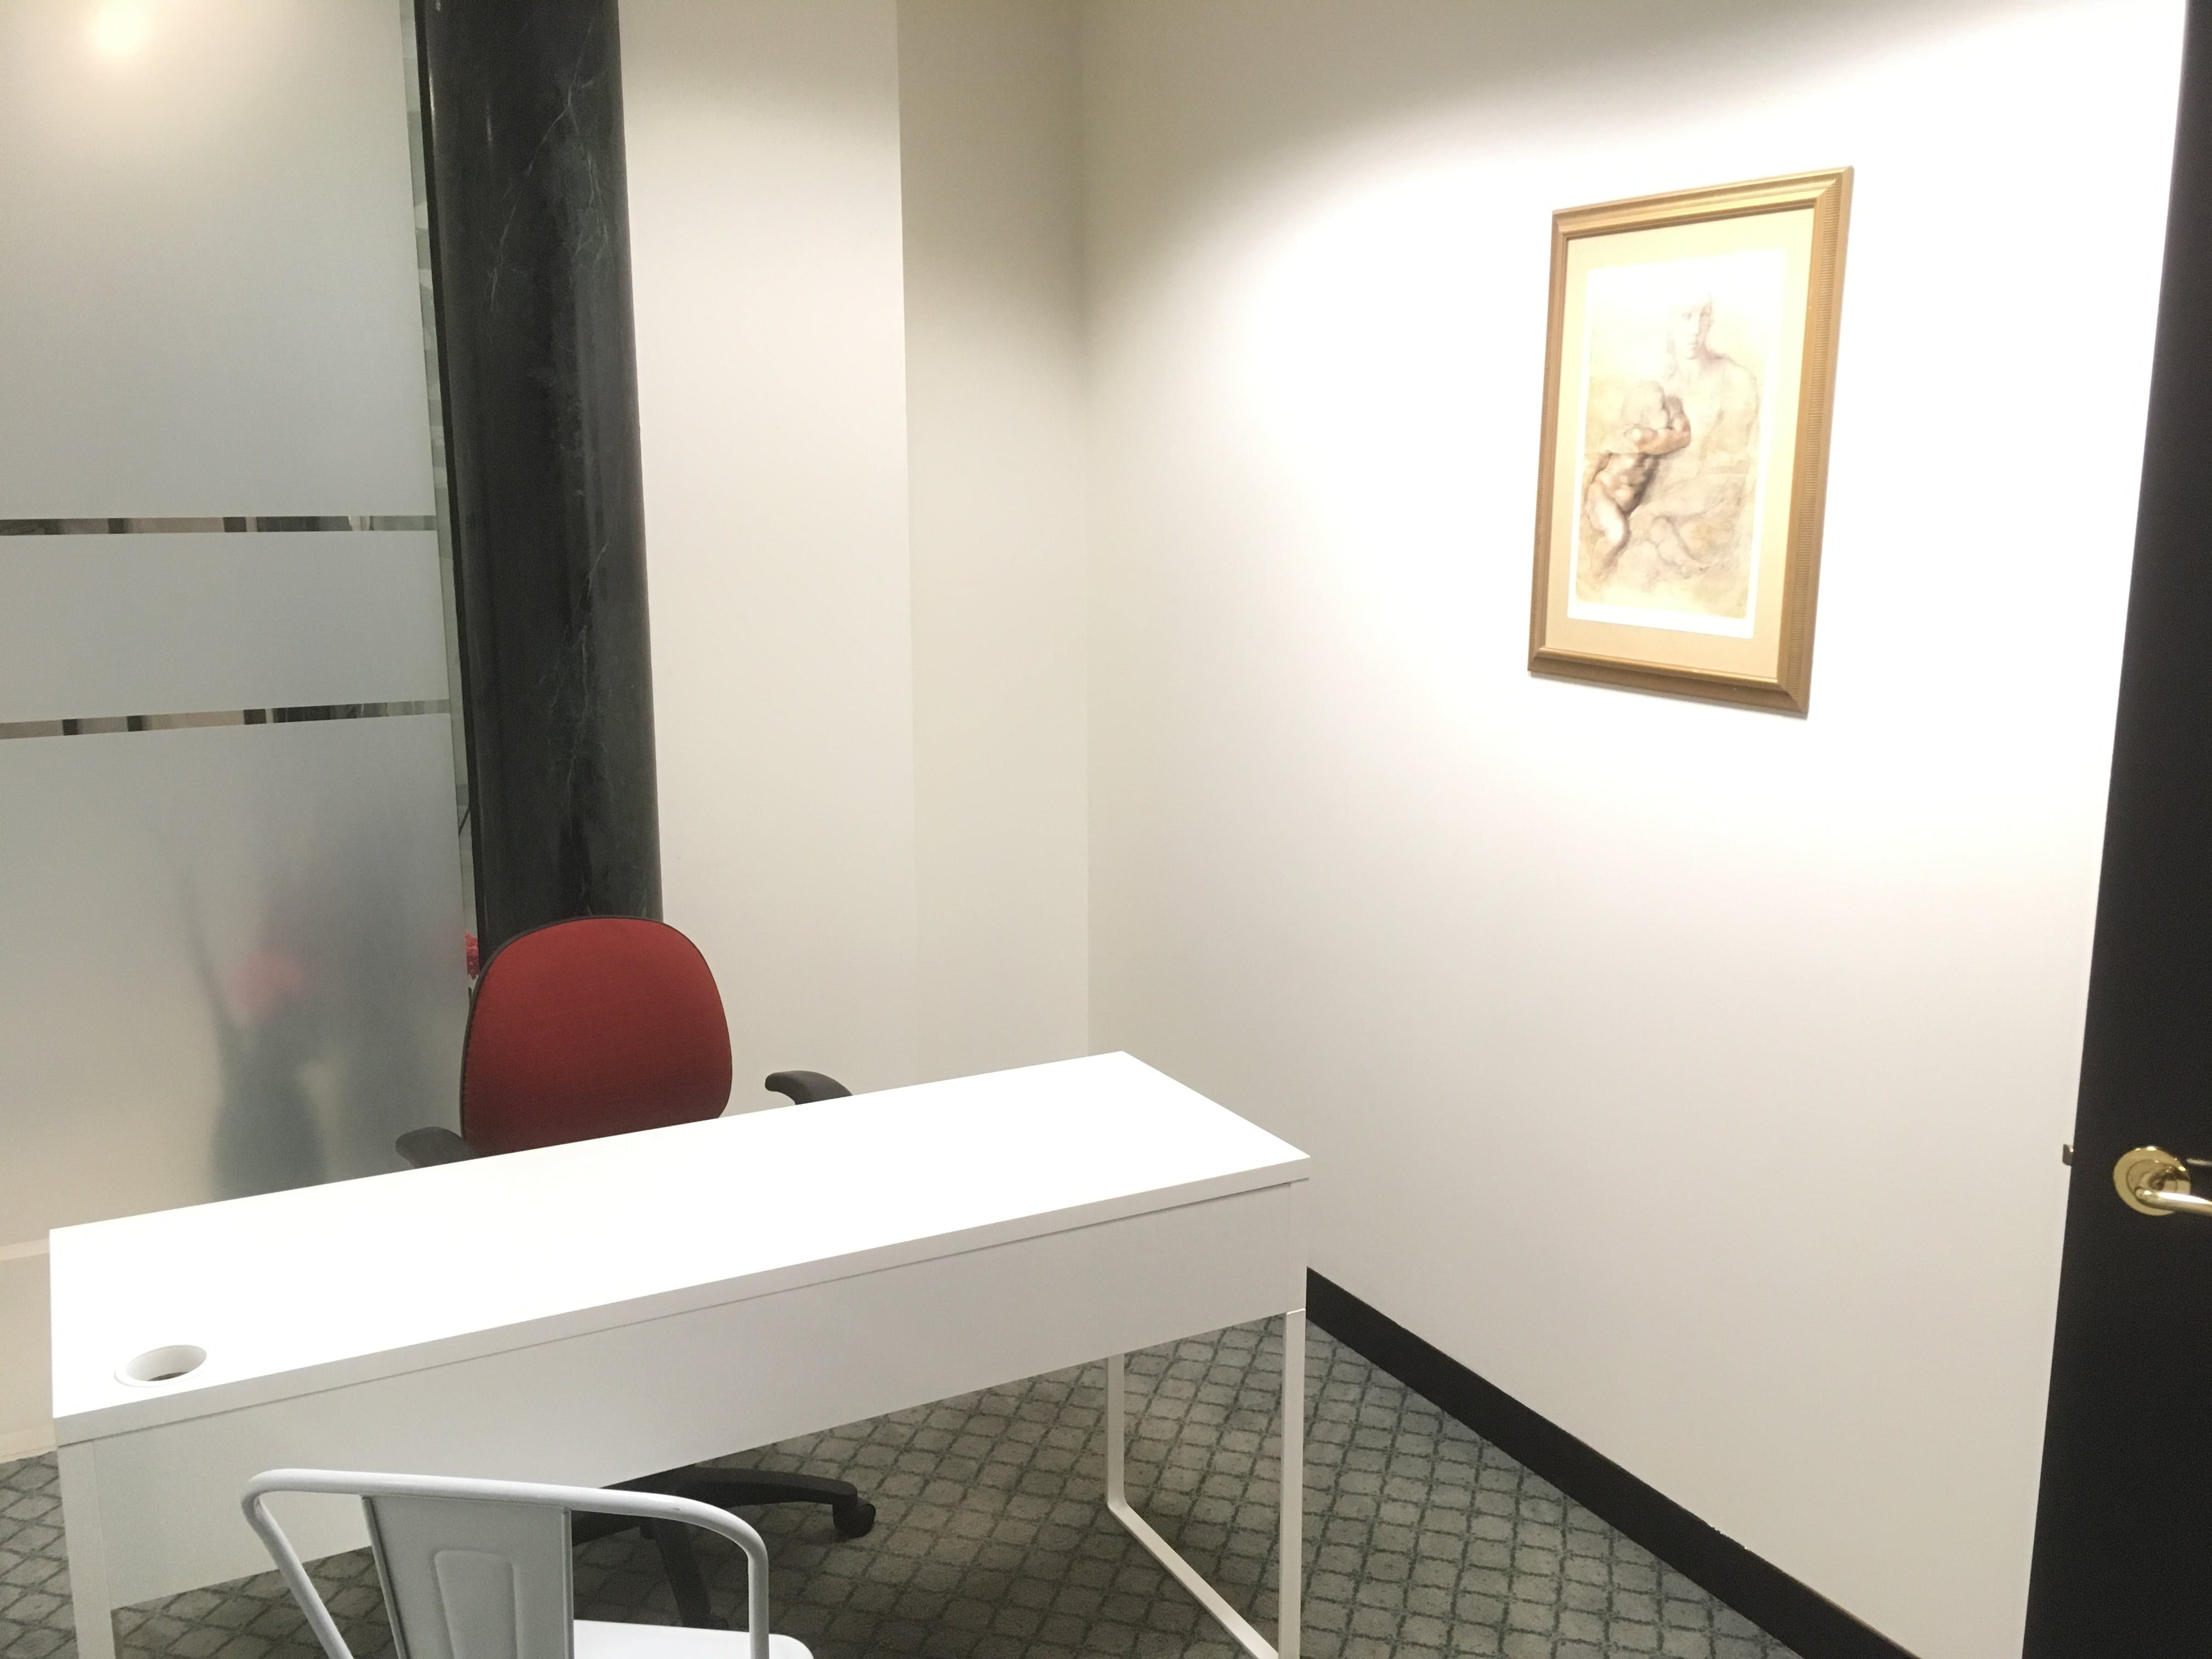 Office 2, private office at Asian Pacific House, image 6